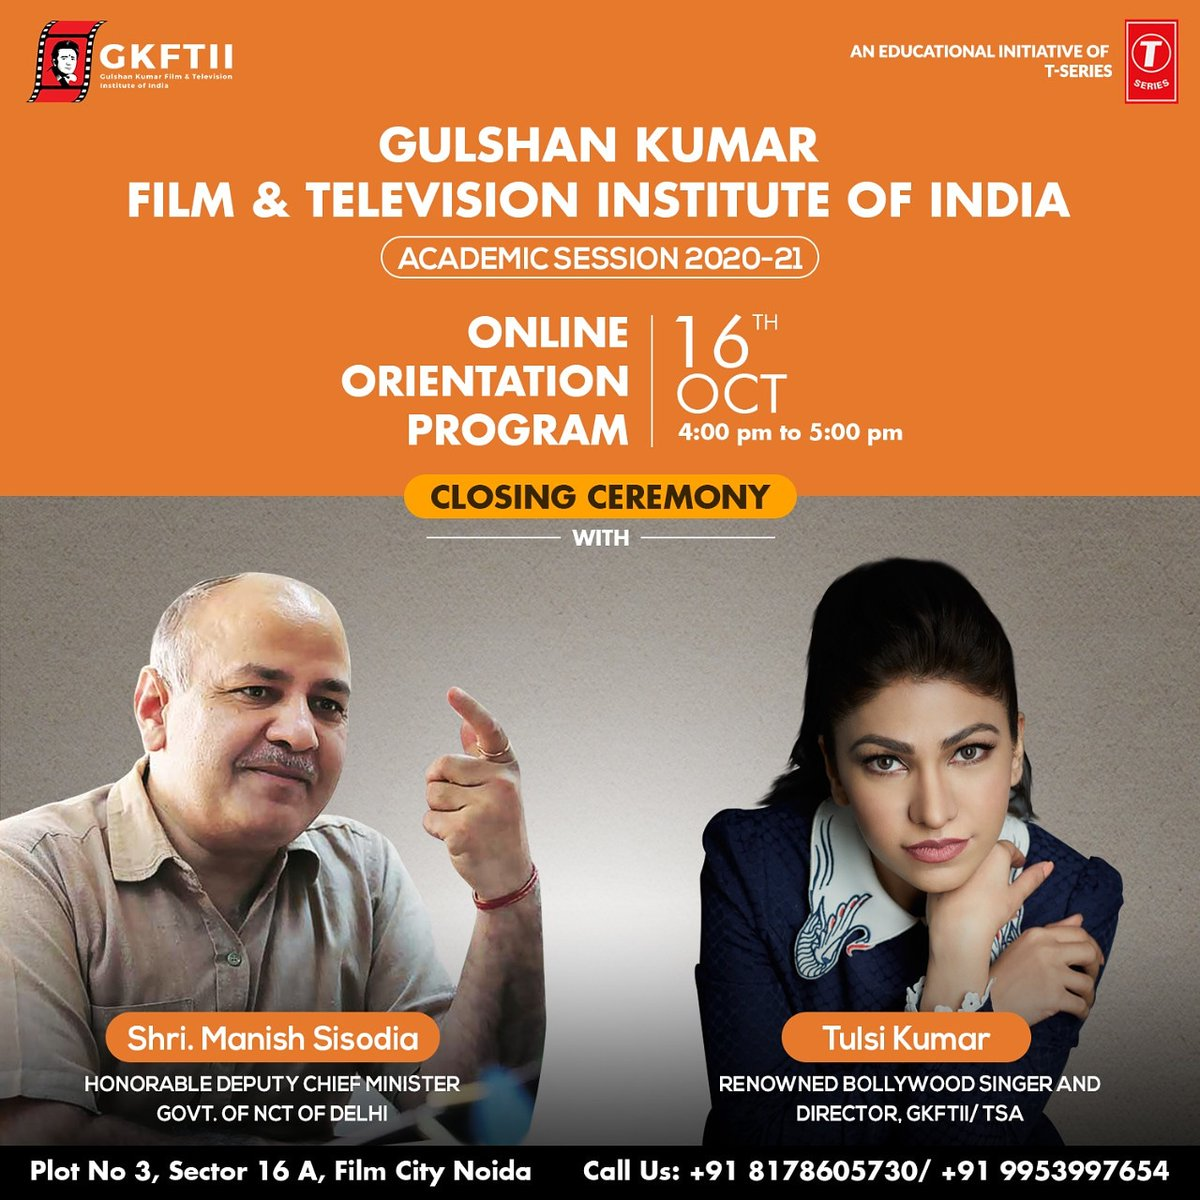 """#GKFTII announces the name of its chief guest Shri #ManishSisodia (Hon'ble Deputy Chief Minister of Delhi) and #TulsiKumar (Renowned Bollywood Singer) who are coming live on the closing ceremony of our """"Online Orientation Progam"""" on 16th Oct. @msisodia @TulsikumarTK https://t.co/y2Wlqc7MSw"""